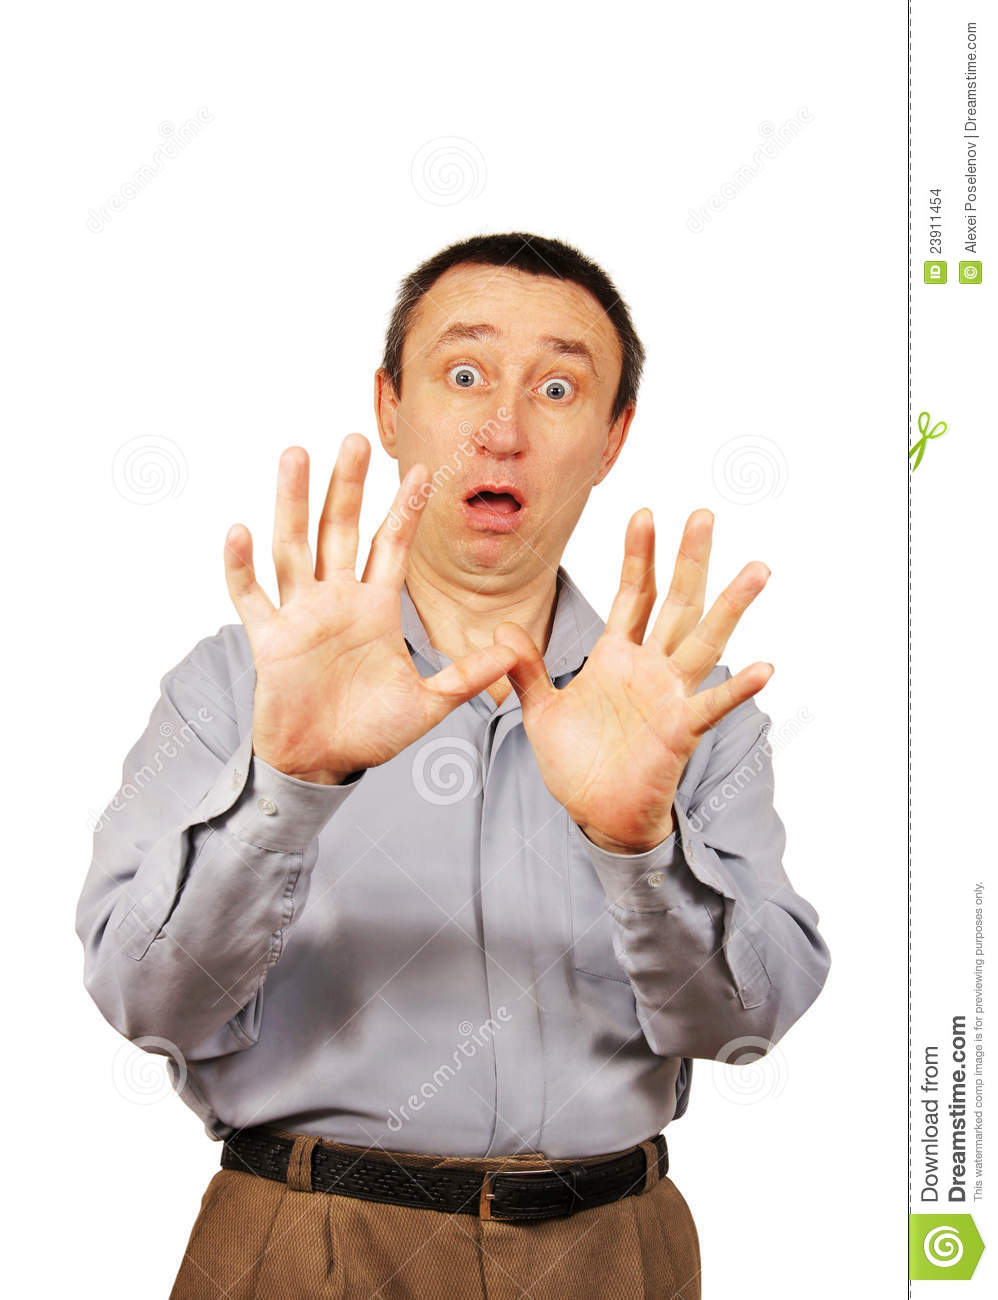 Scared man is closed by hands over white background.